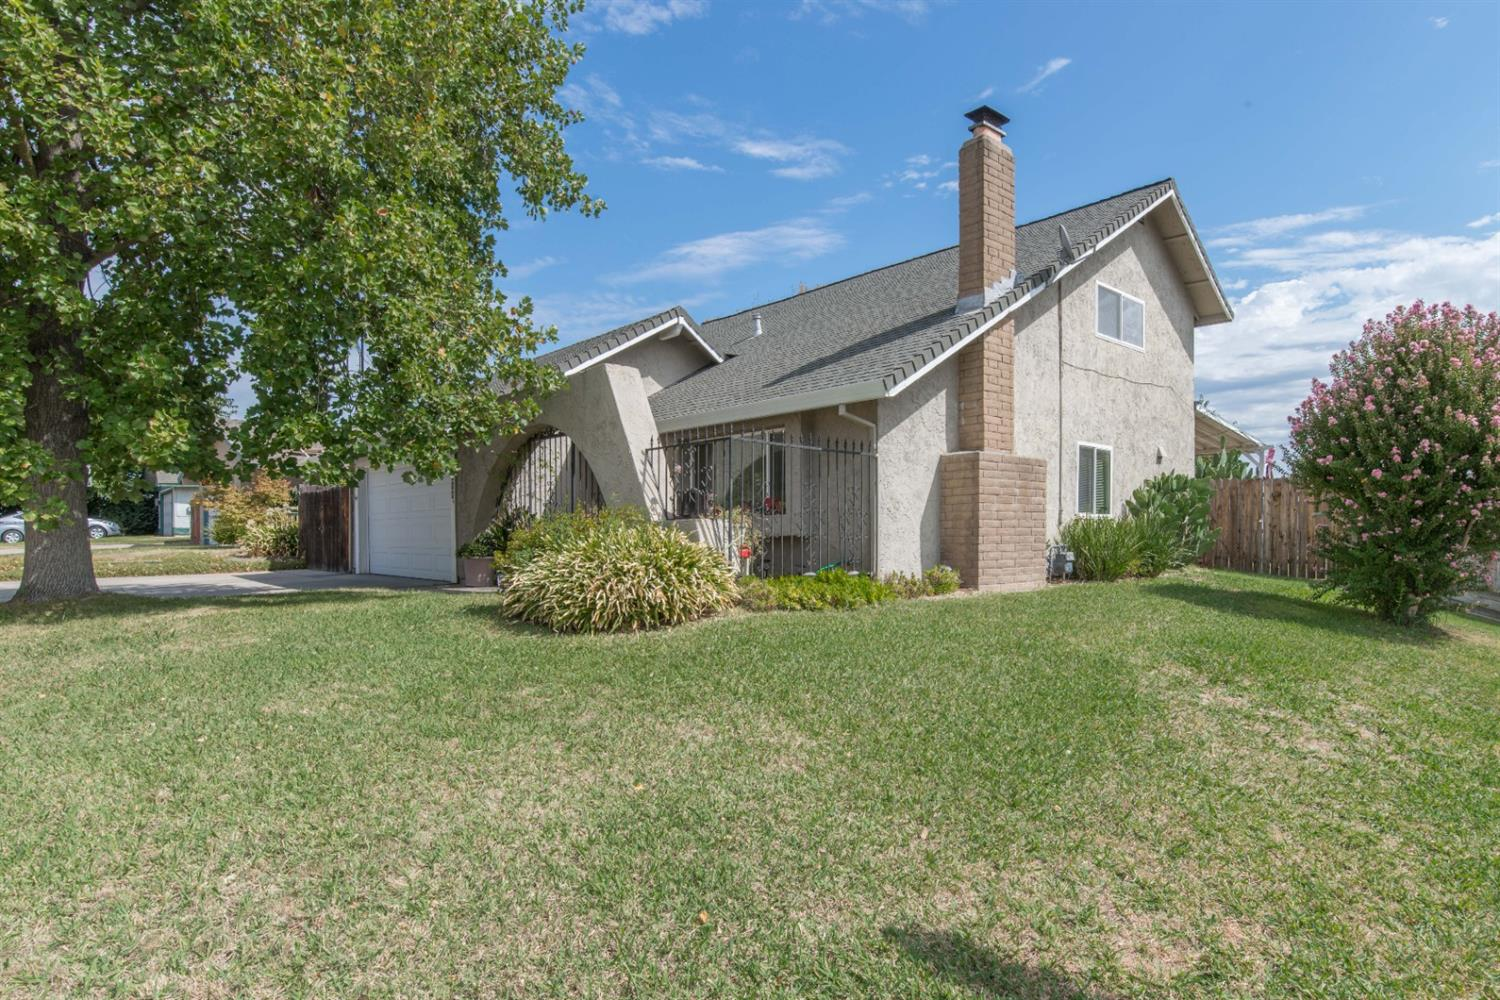 Photo of 7500 Daly Avenue, Citrus Heights, CA 95621